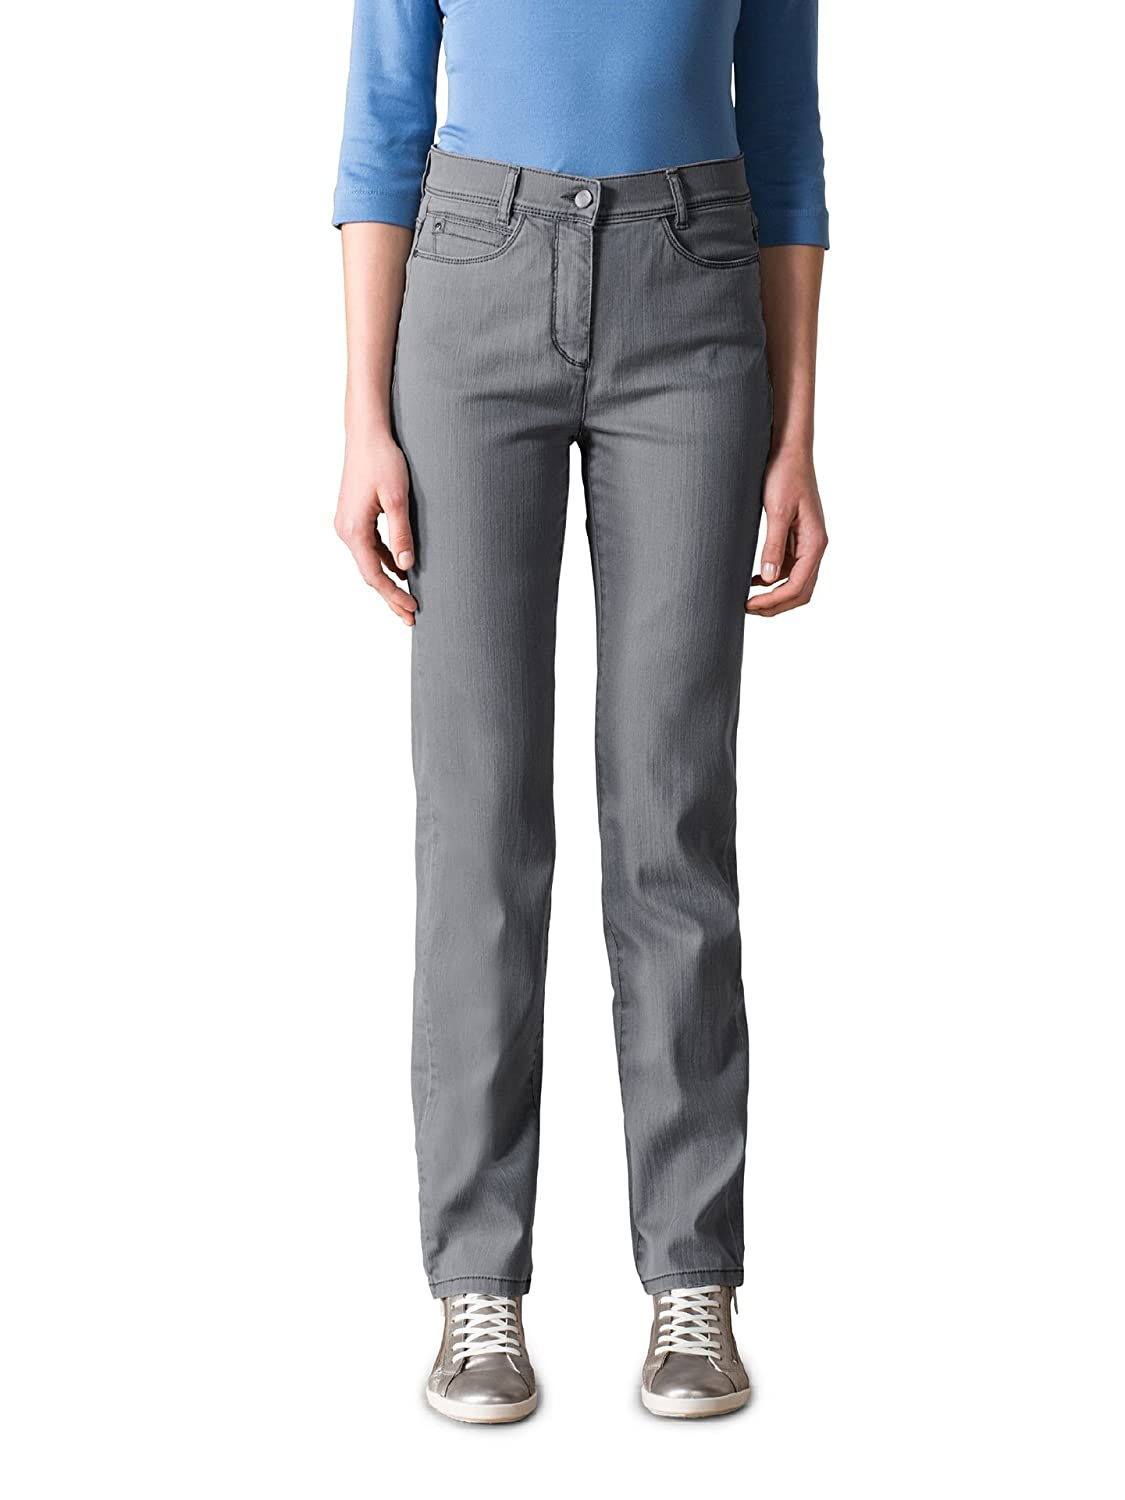 factory outlet new lower prices uk cheap sale Walbusch Damen Yoga-Jeans Supersoft Regular Fit einfarbig